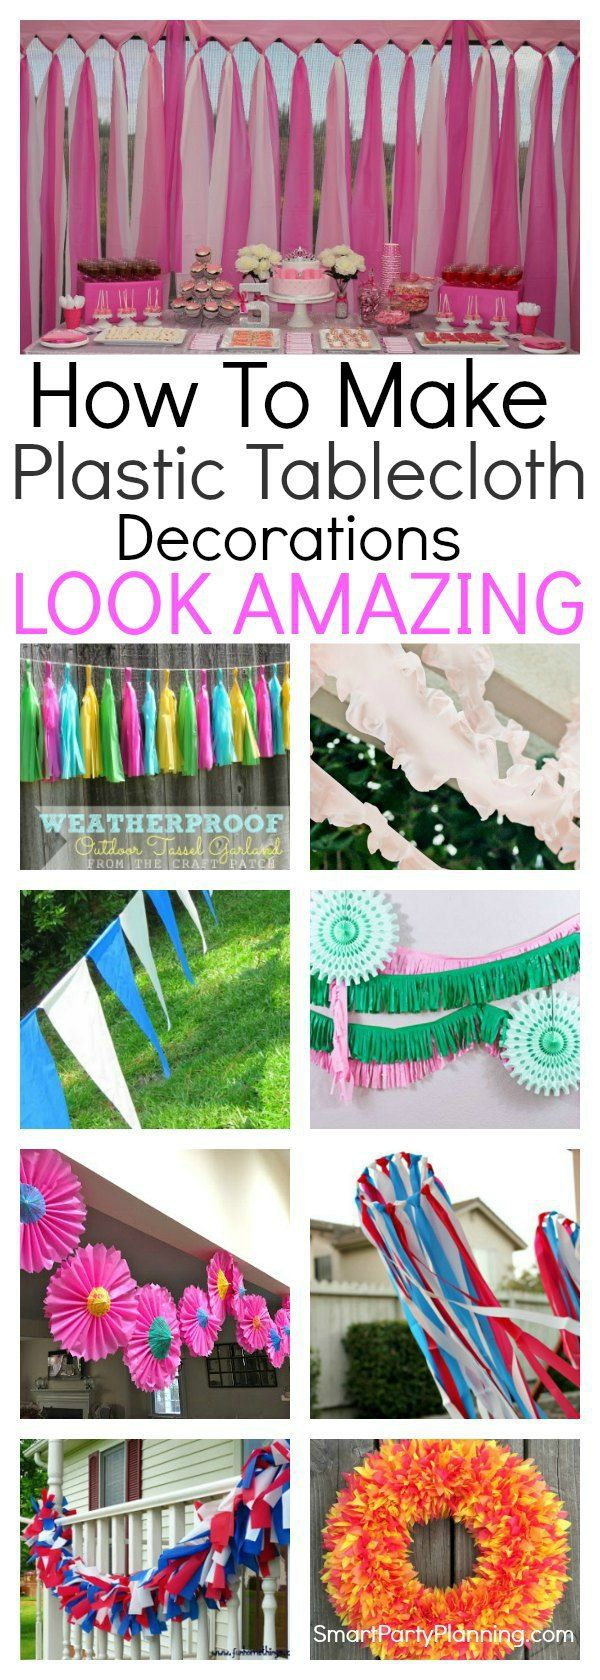 These 12 easy plastic tablecloth decorations will make decorating for parties a breeze. With all the items easily purchased from dollar stores, they are not only effective and easy to make, but really cheap too. Whether you want to make a photo booth backdrop, streamers or simply jazz up table runners, all the party ideas are here for you. Party decoration could not be easier.